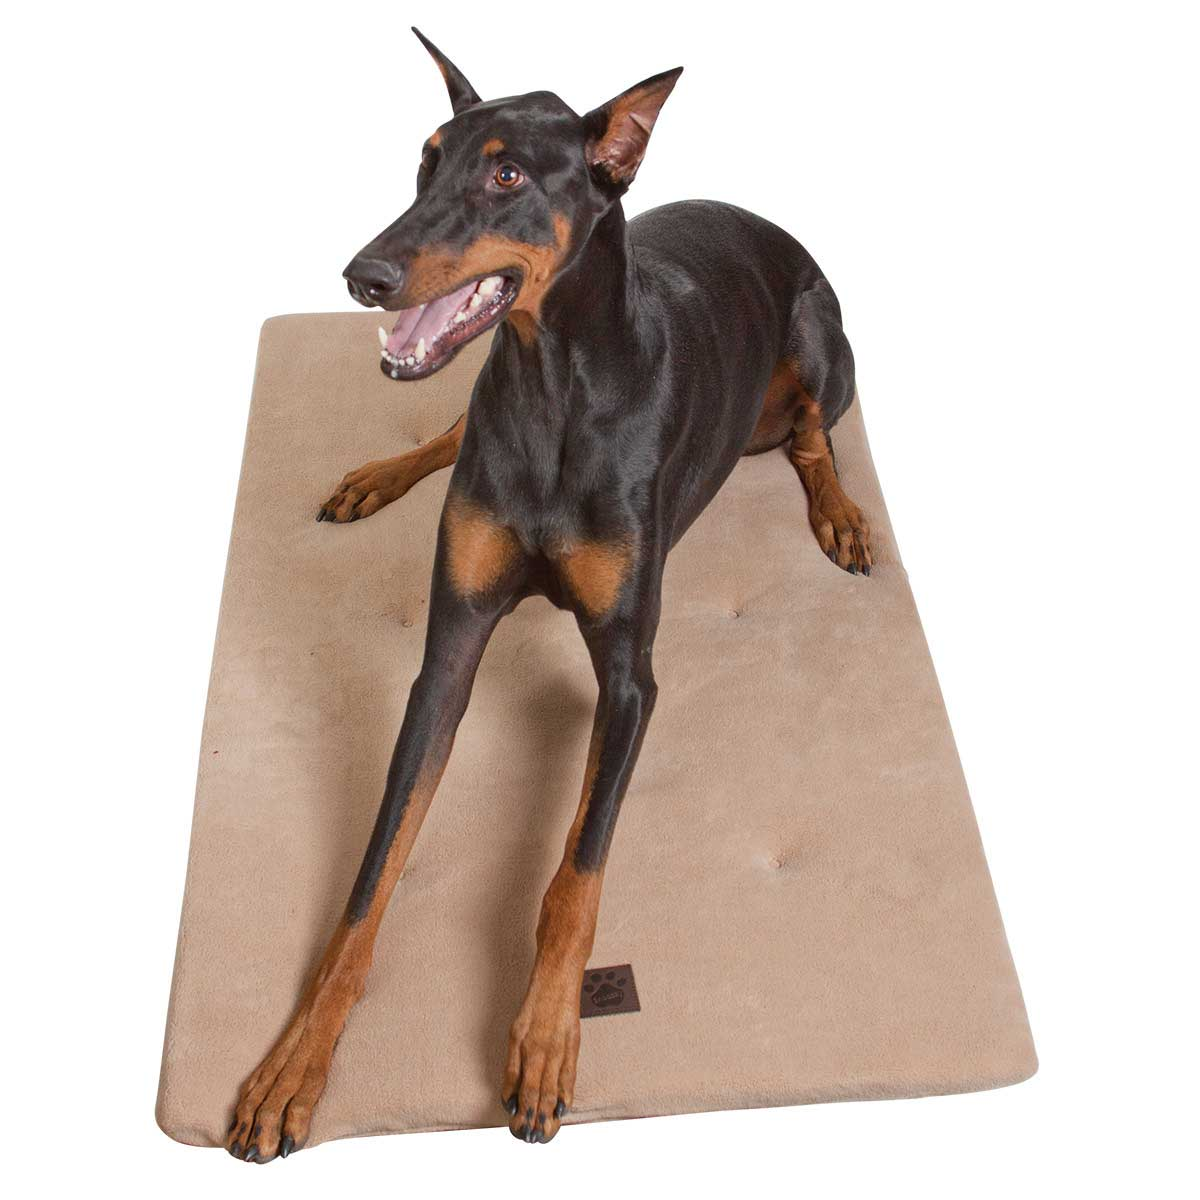 Tan Snoozzy Mattress for Doggos 47 inches by 28 inches